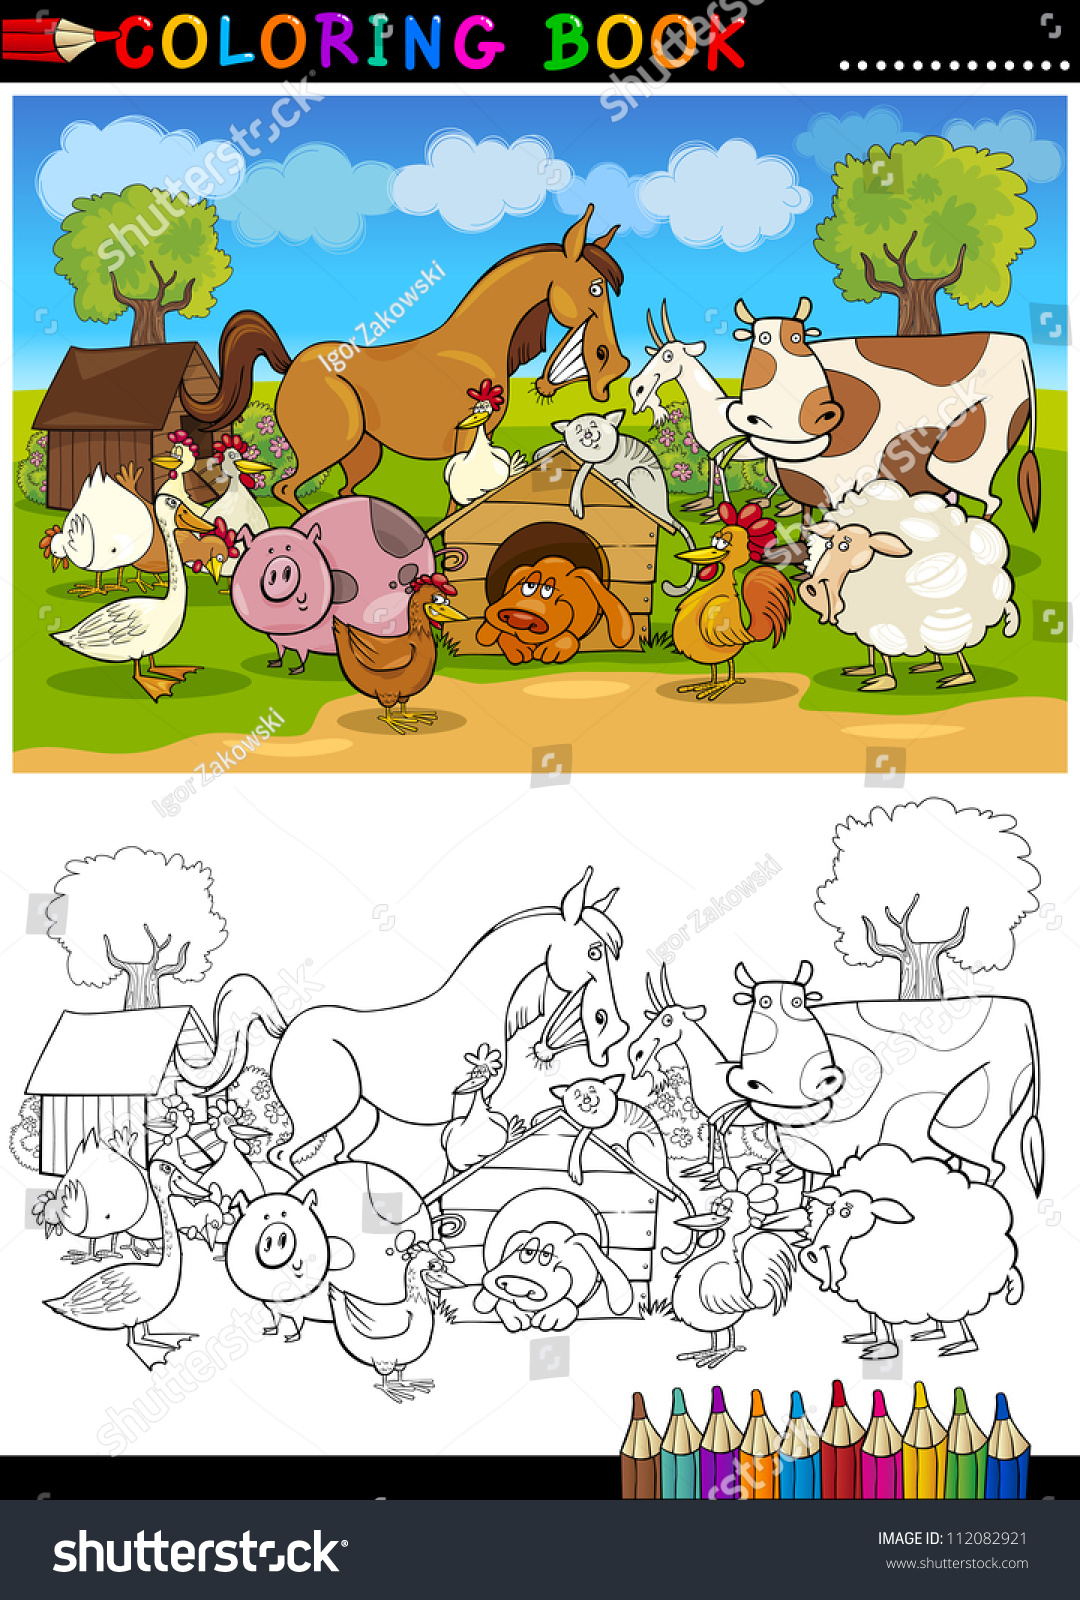 Coloring book pages farm animals - Coloring Book Or Page Cartoon Illustration Of Funny Farm And Livestock Animals For Children Education